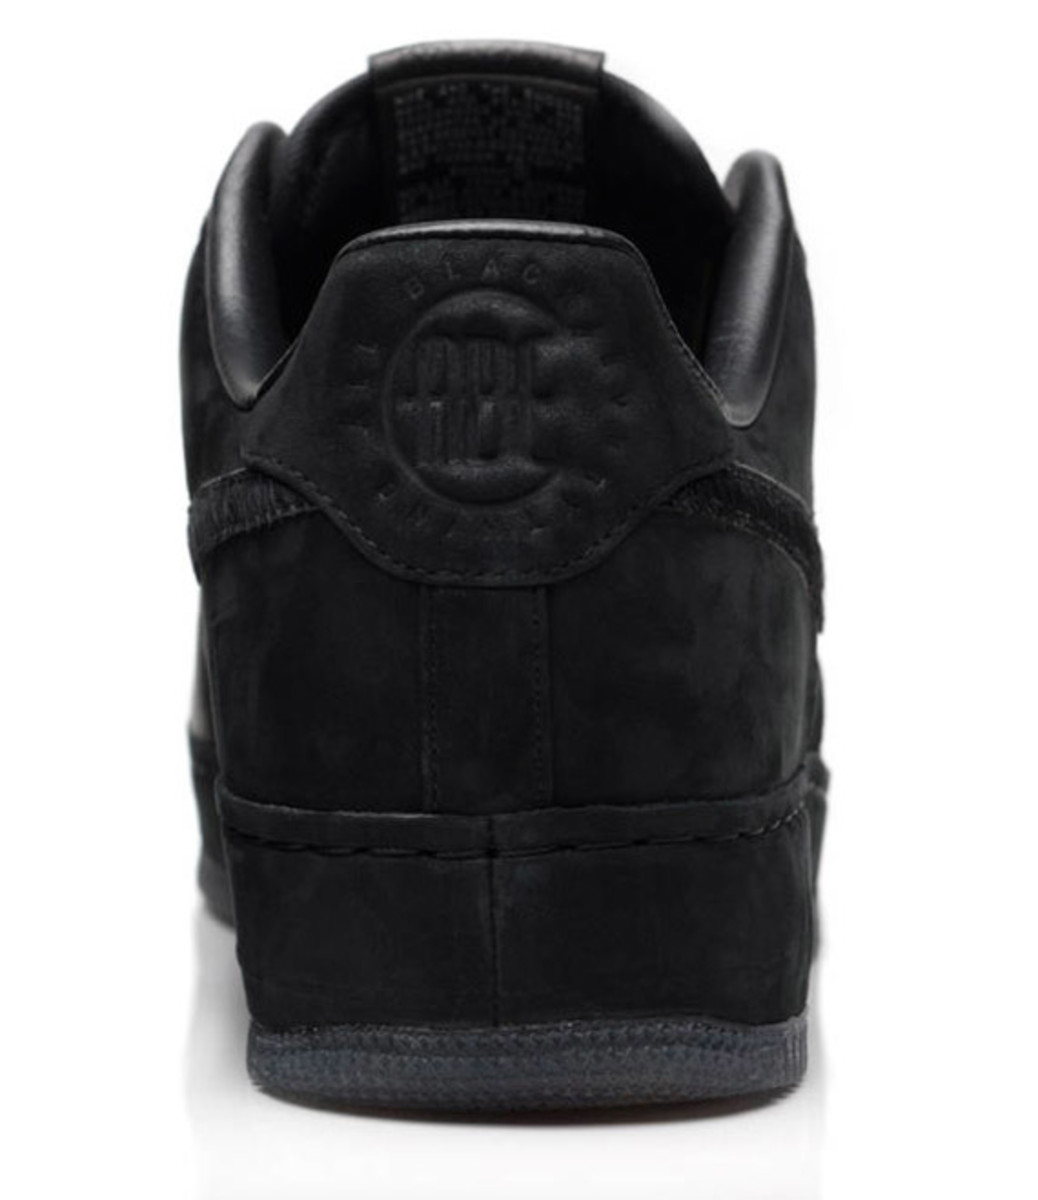 jay-z-nike-air-force-1-all-black-everything-china-08